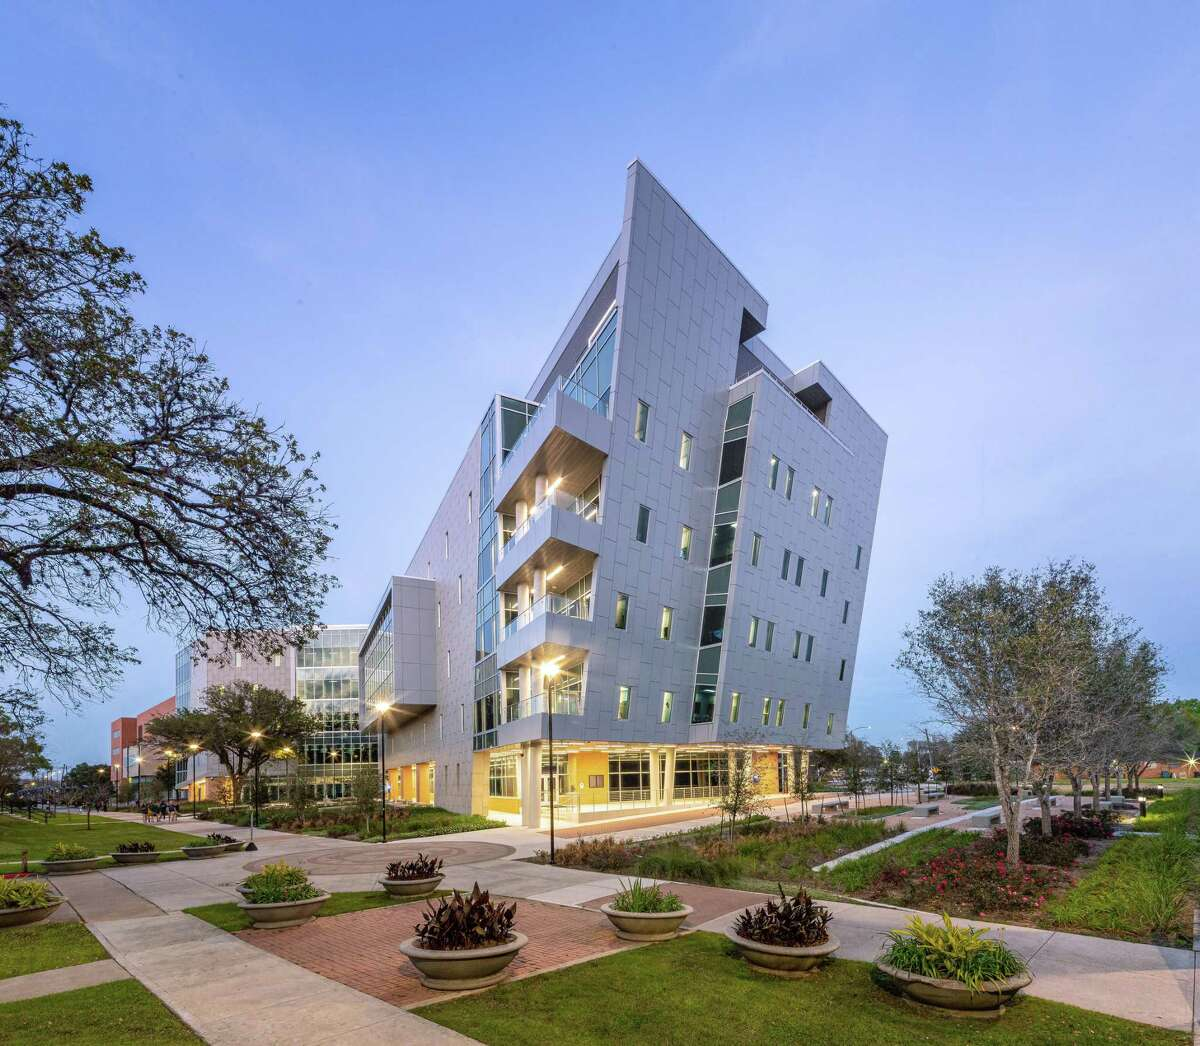 The Library Learning Center at Texas Southern University, designed by Moody Nolan.